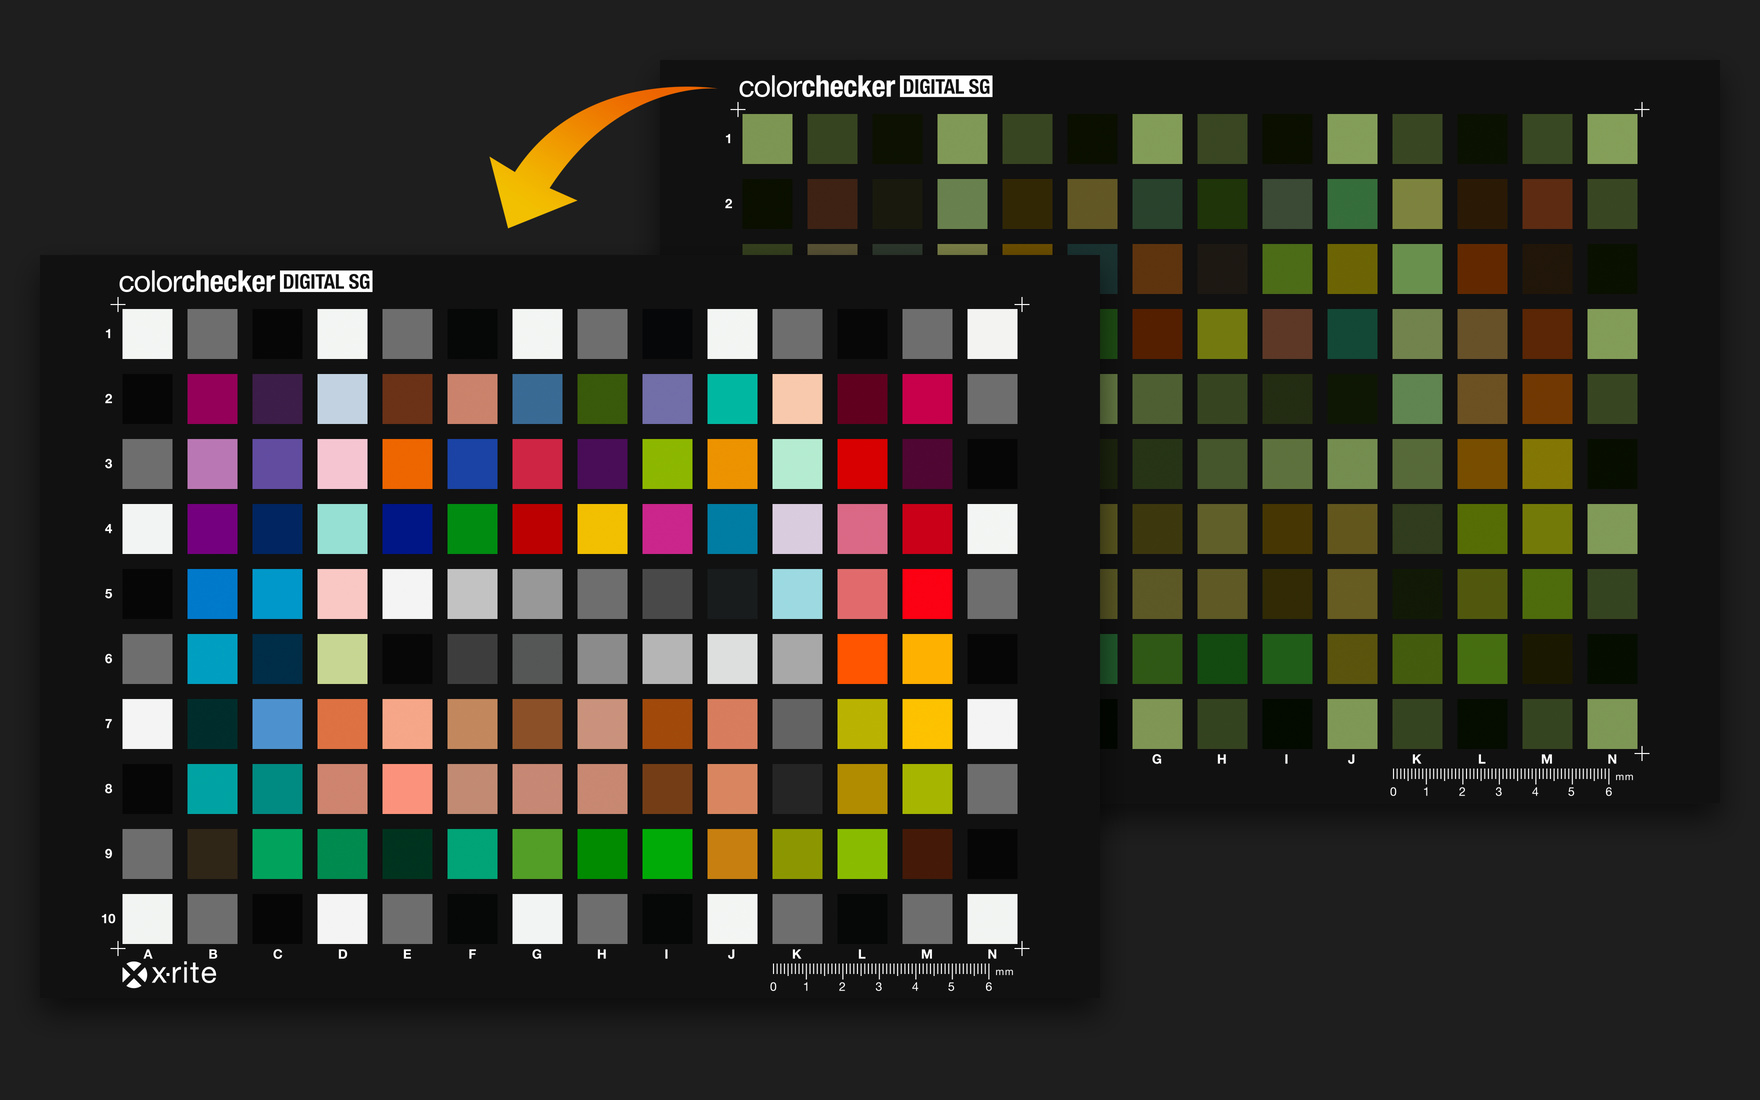 Color calibration using a ColorChecker Digital SG